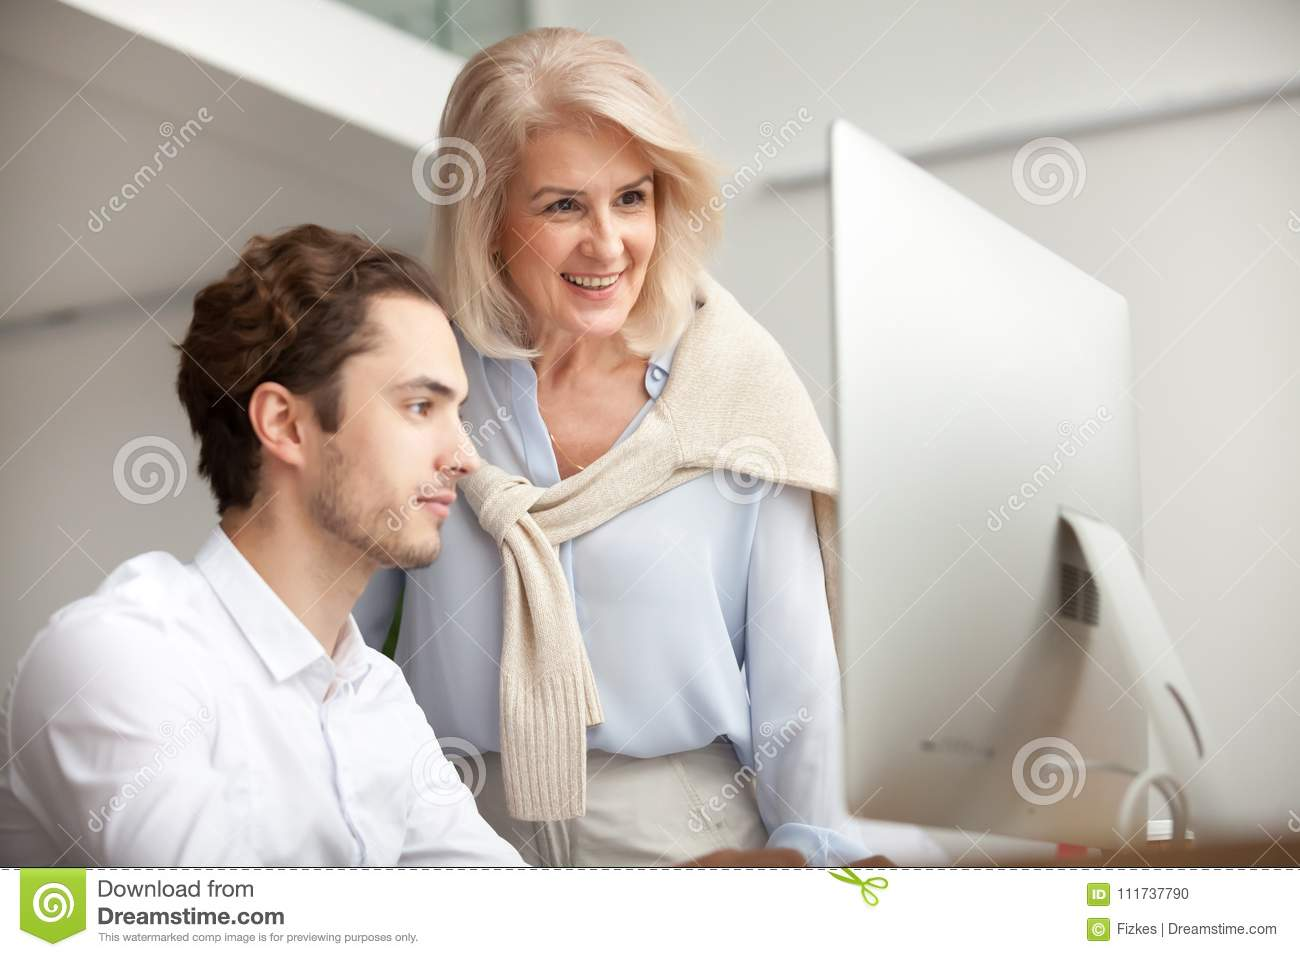 Smiling aged female mentor looking at computer screen helping in